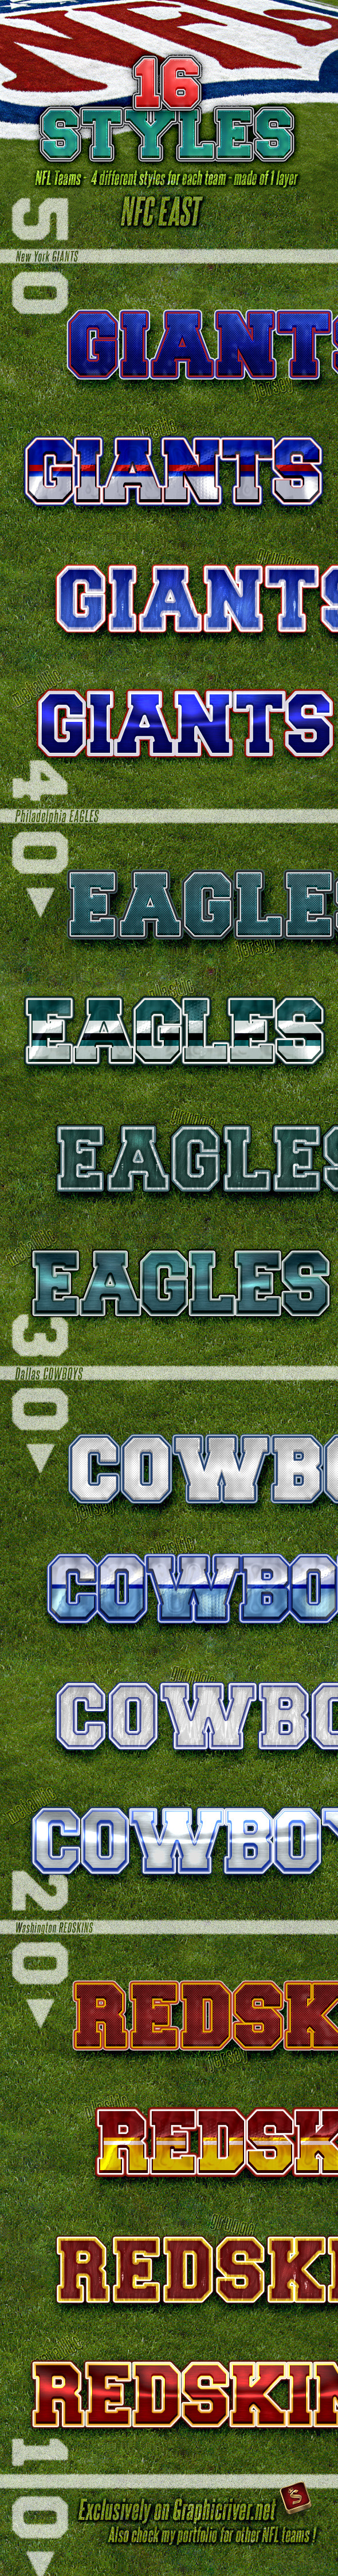 NFL Football Styles - NFC East - Styles Photoshop